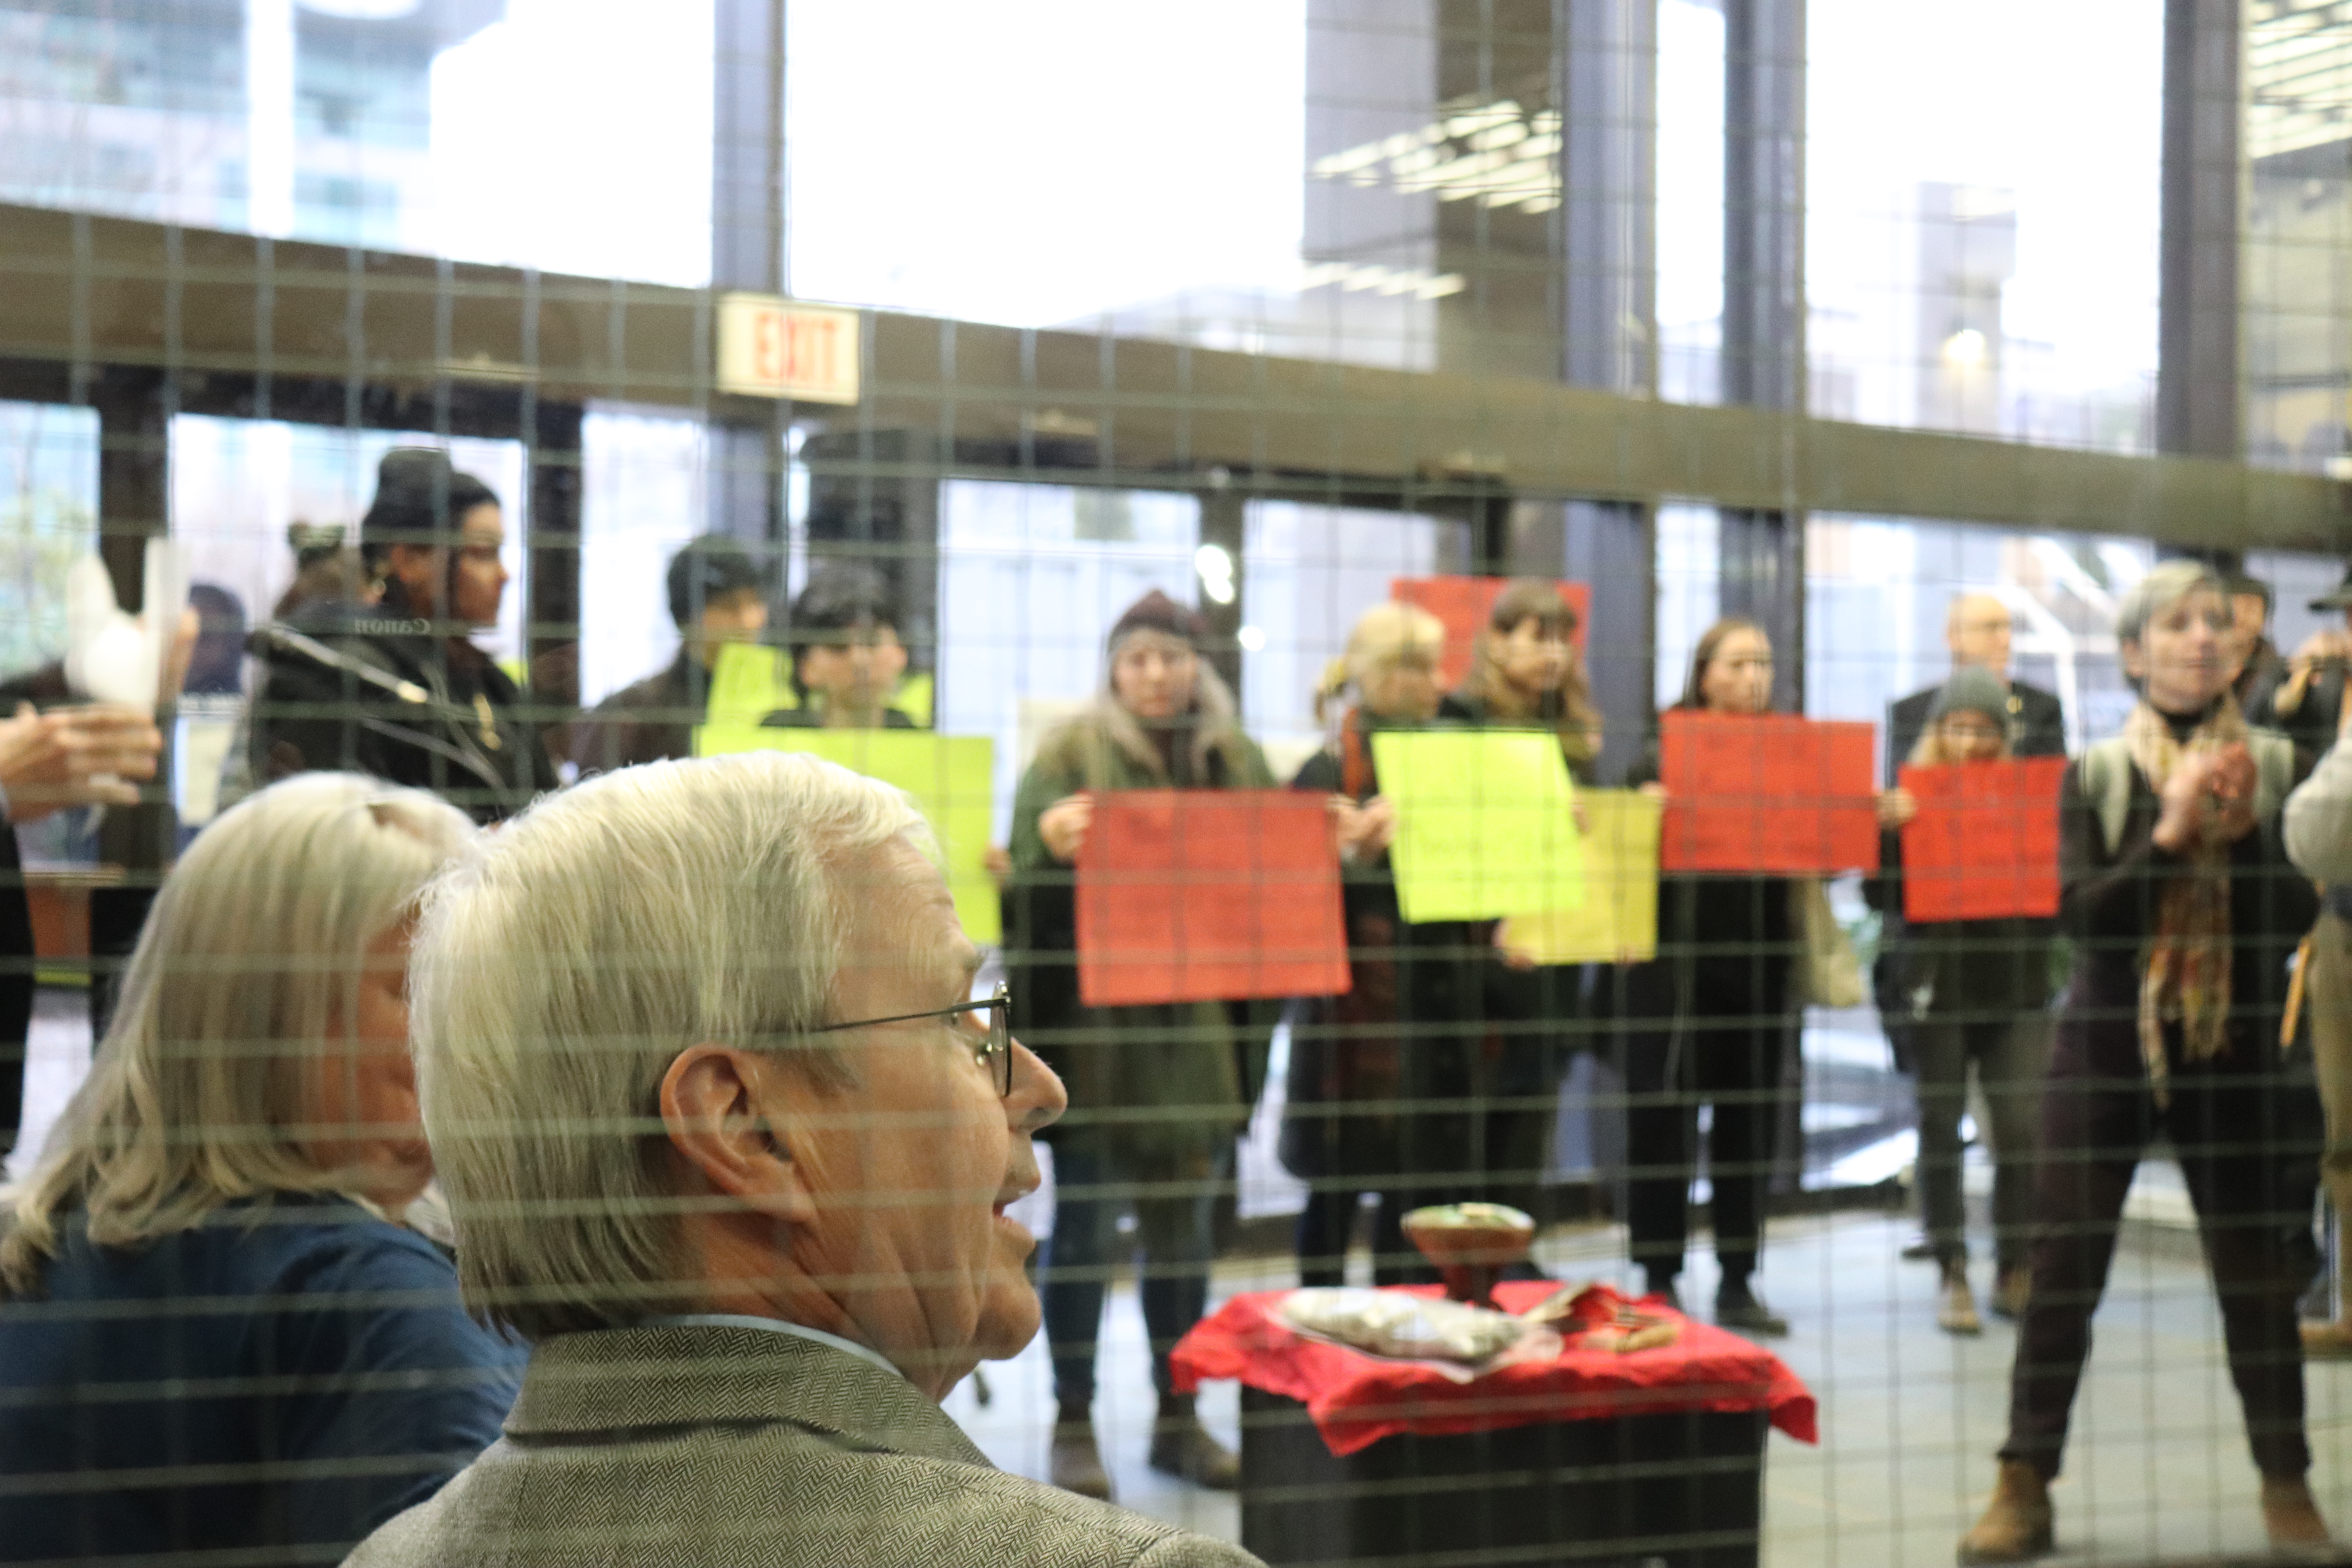 In this image: MacKinnon sits down after his speech, students hold signs in front of him.